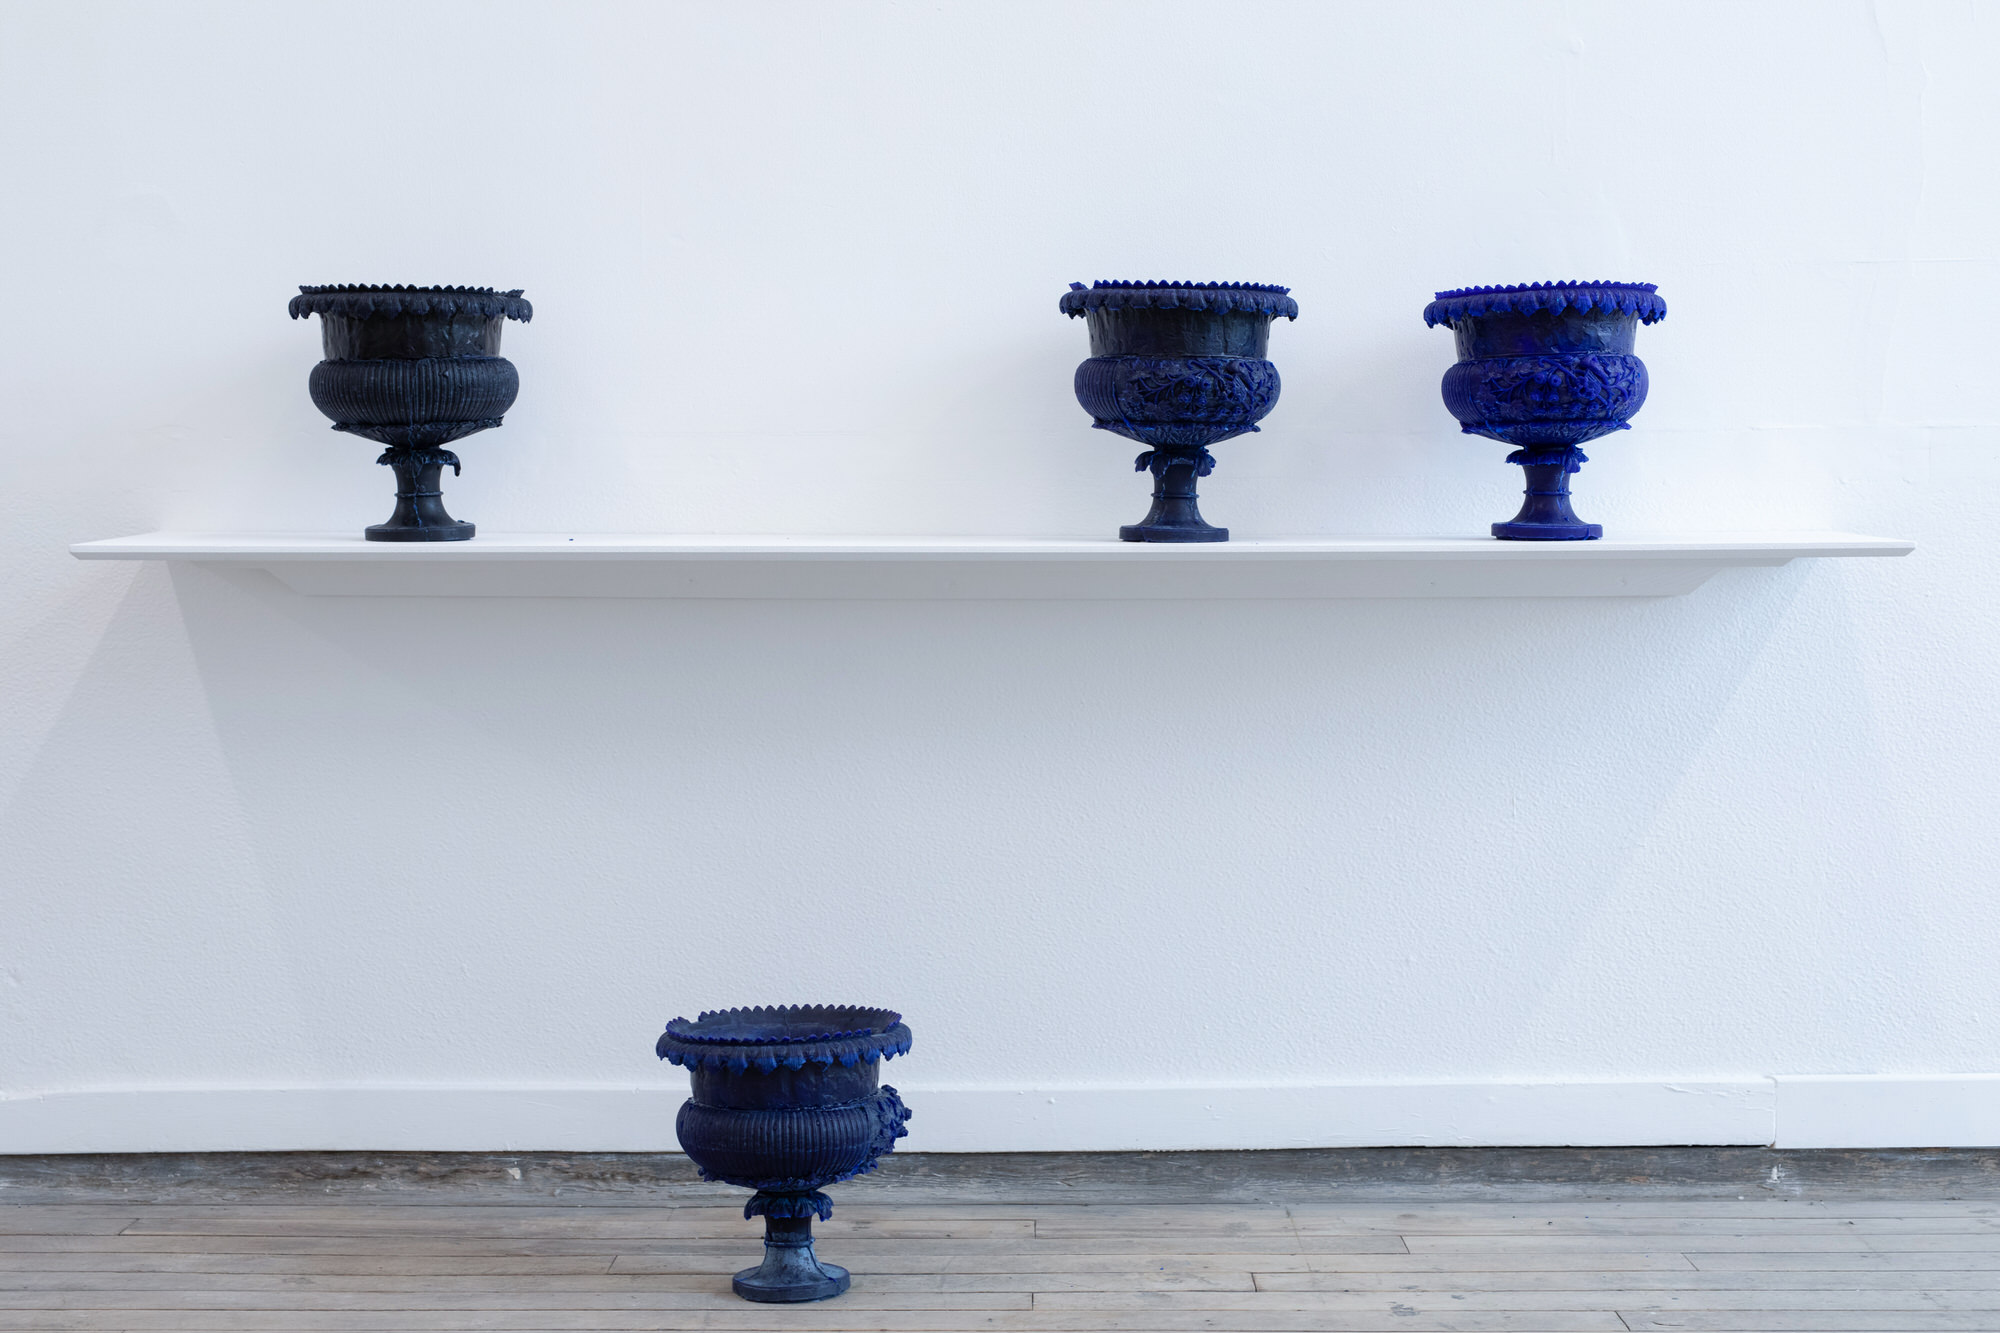 Harriet-Abbott | blue wax casts of urns | Image by McAteer Photo